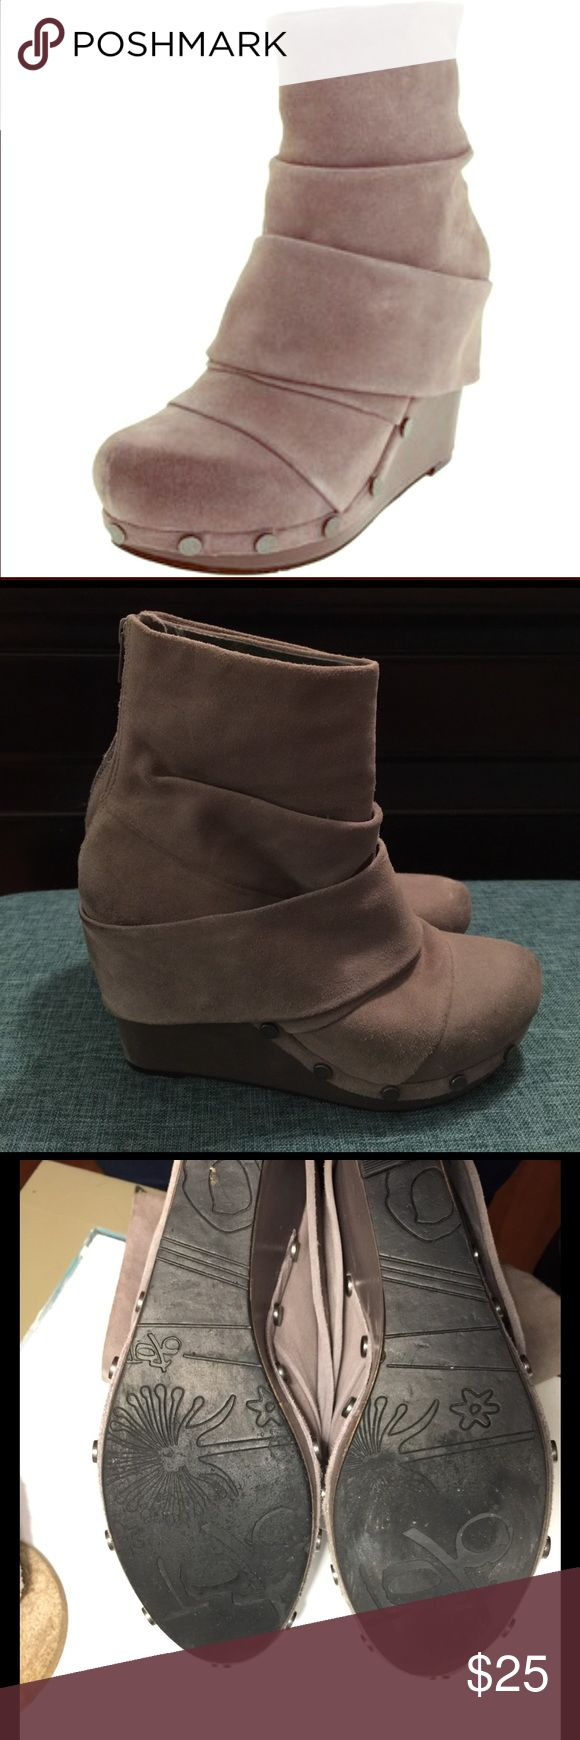 "OTBT ""Arcola"" gray suede boots OTBT distressed gray suede platform wedge ankle boots size 9, have some wear on heels and toes but still lots of wear in them! OTBT Shoes Ankle Boots & Booties"